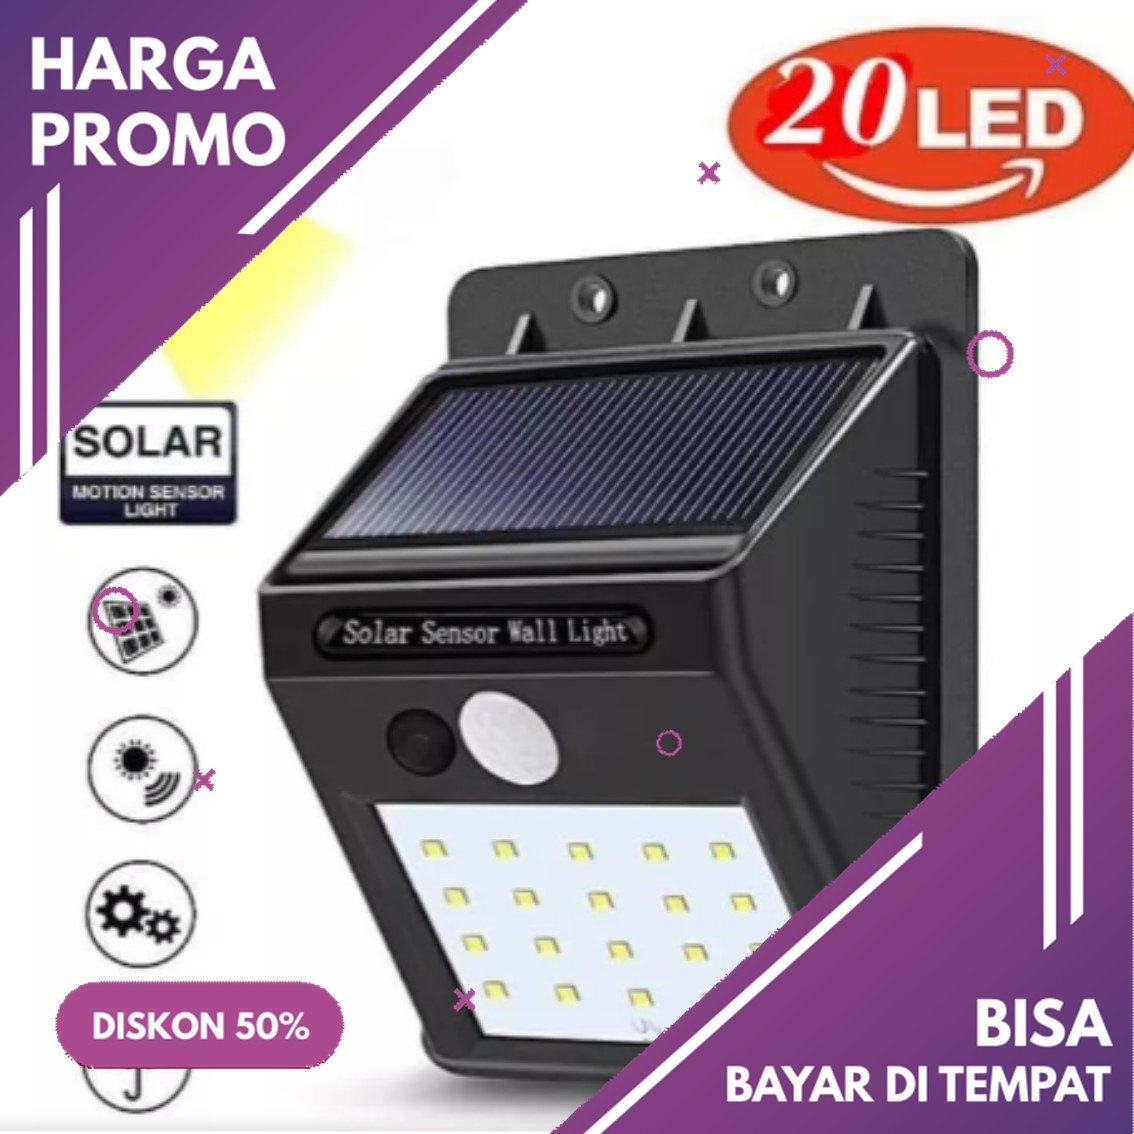 BISA COD Lampu Solar Cell Power 20 LED Wall Motion Sensor Light Outdoor Tenaga Matahari Panel Surya Teras Taman Dinding Tembok Cahaya Gerak Nyala Otomatis Malam Emergency Waterproof